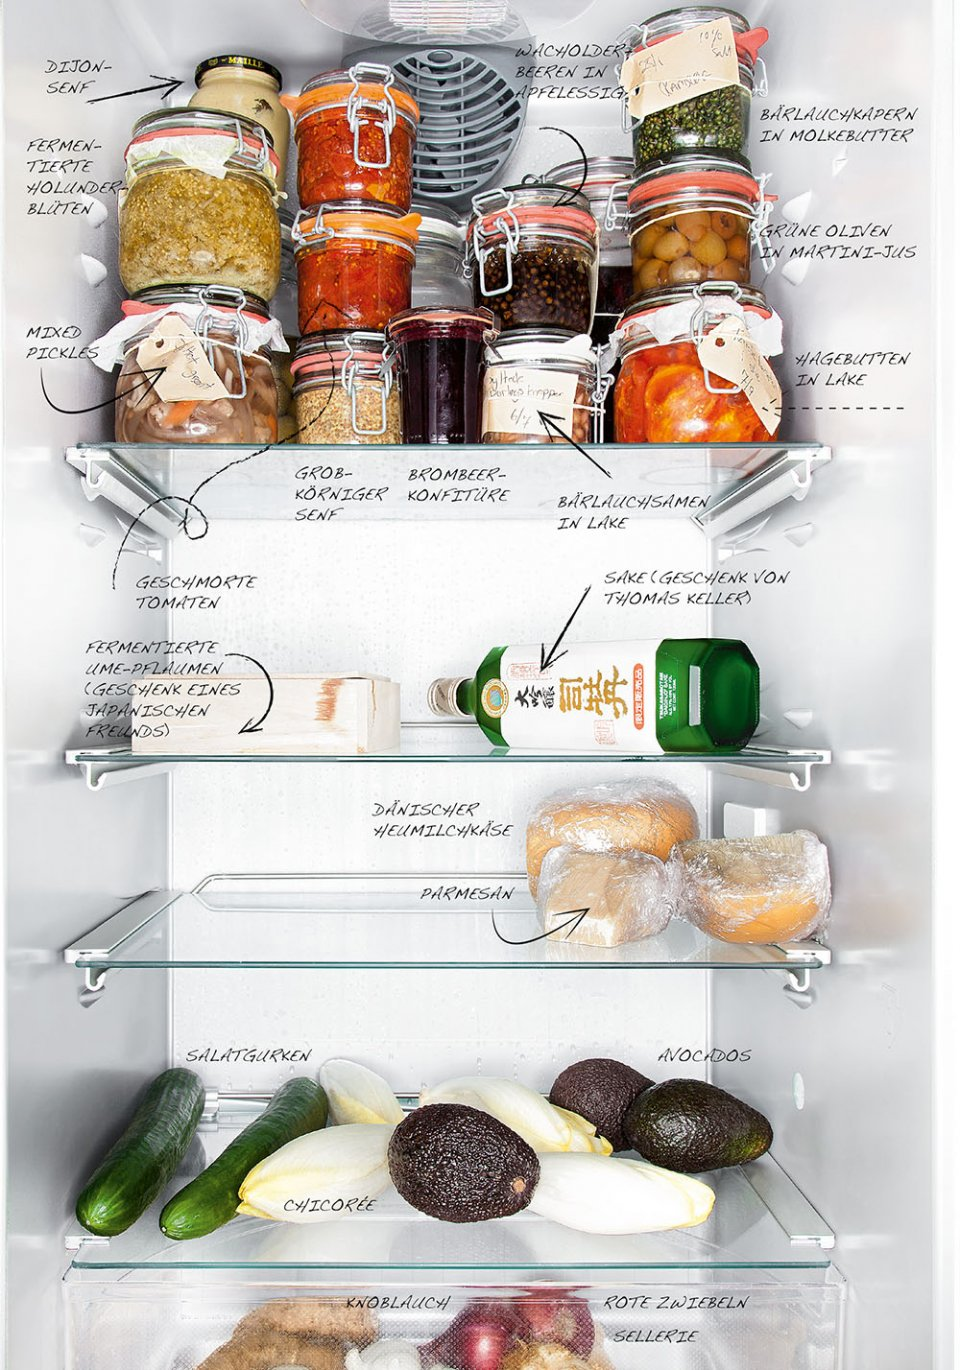 va_inside_chefs_fridges_bech_d_058_1509151547_id_996537